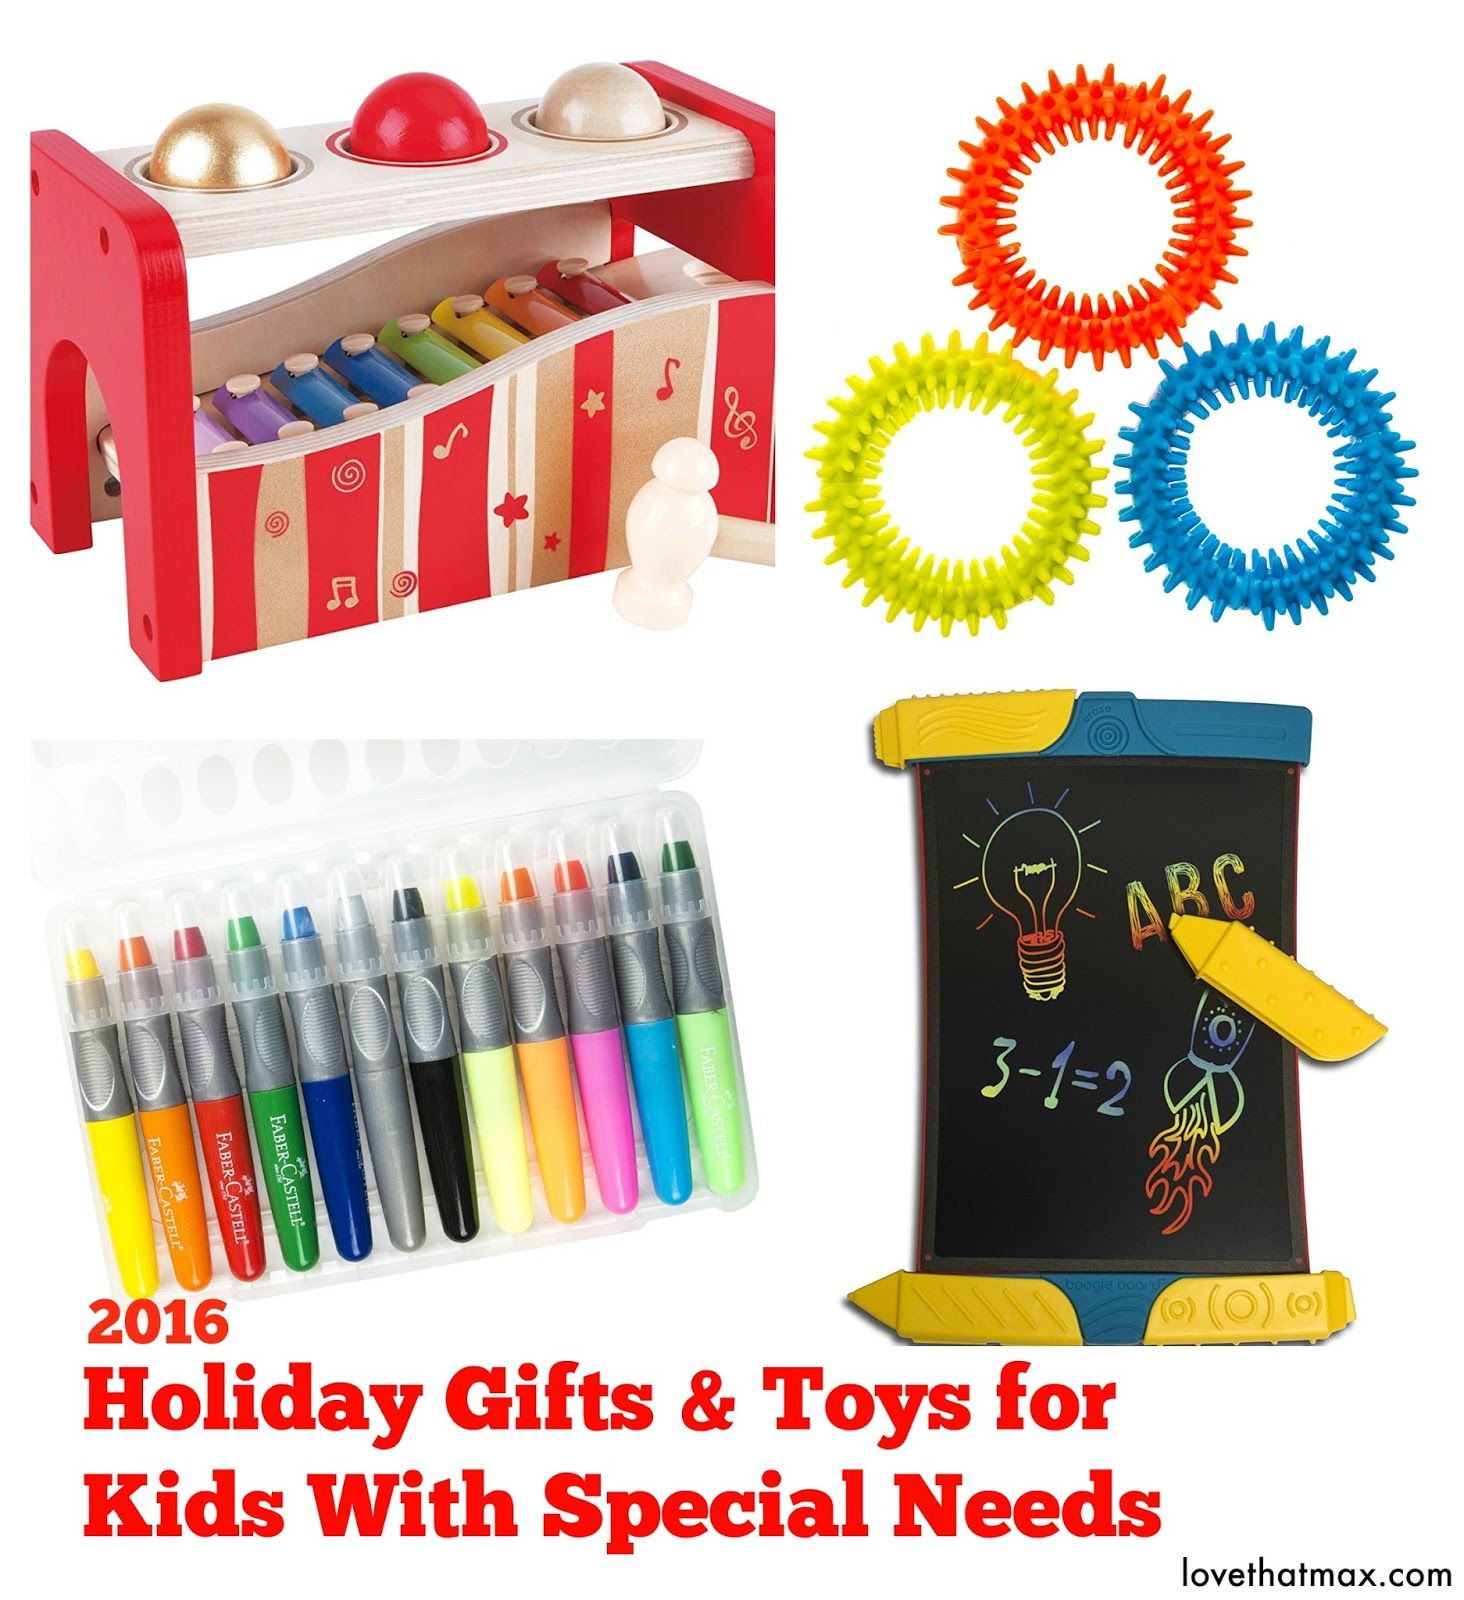 Love That Max Holiday Gifts And Toys For Kids With